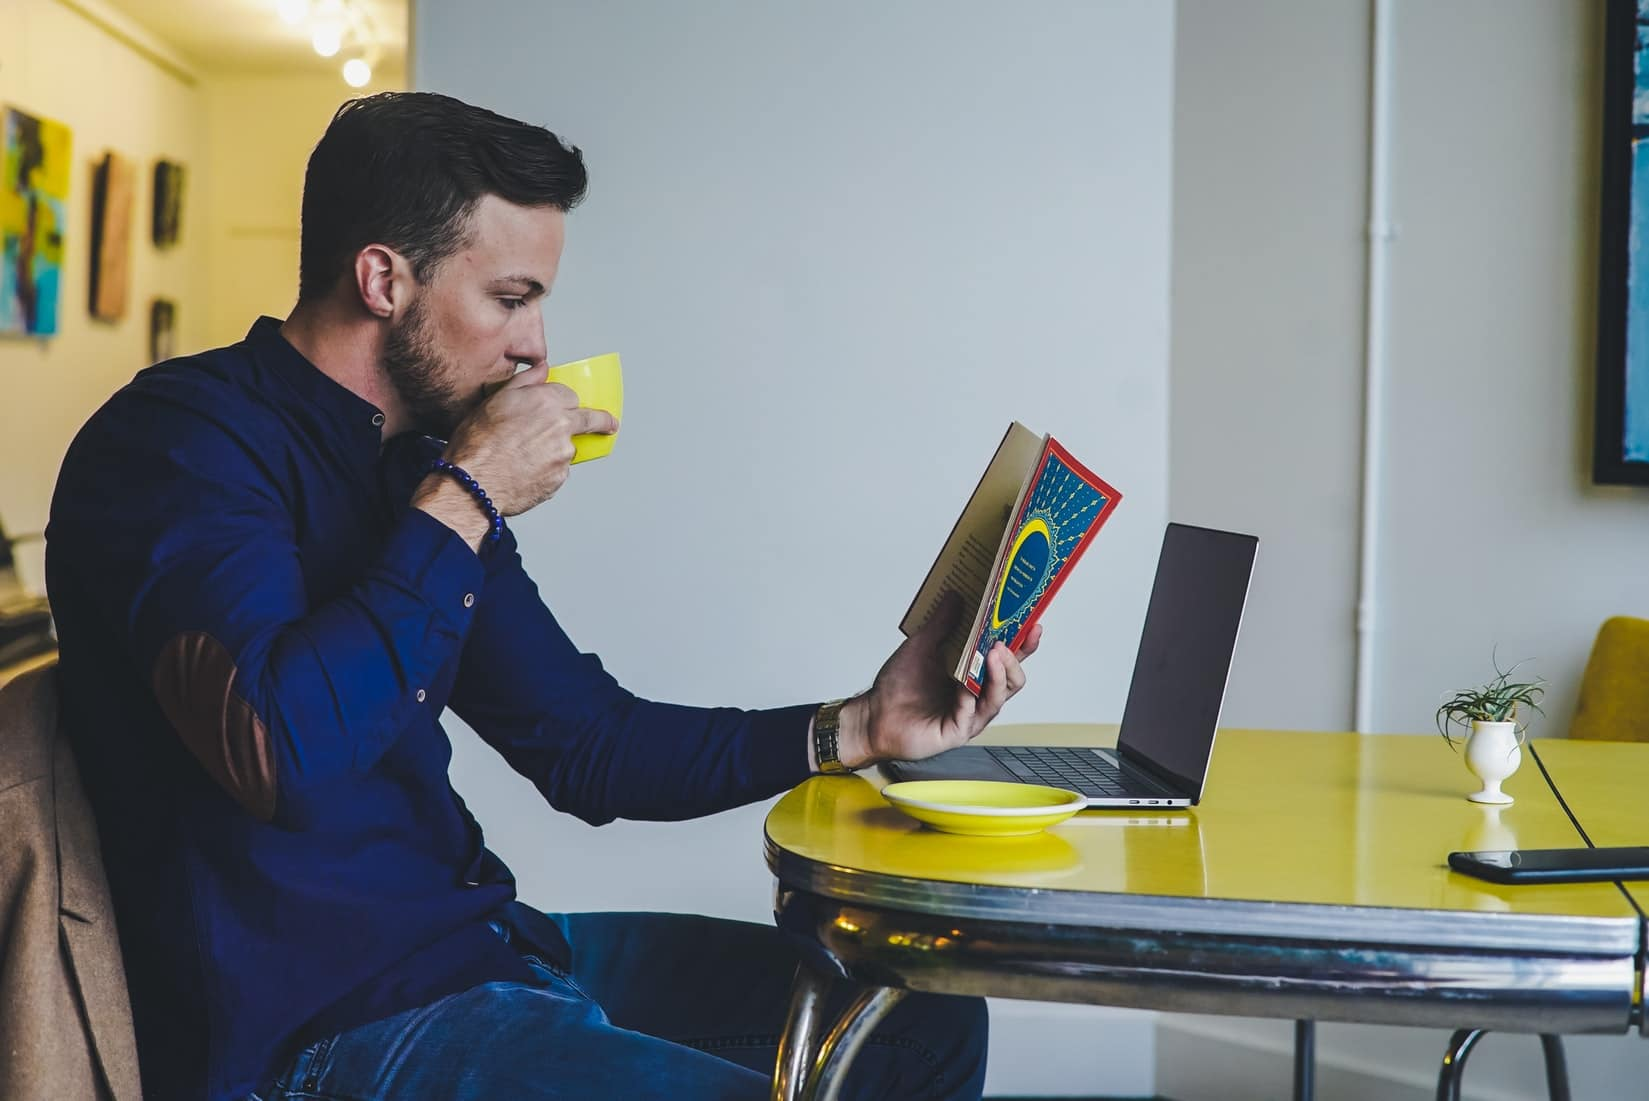 Man reading one of the best seduction books while drinking coffee.